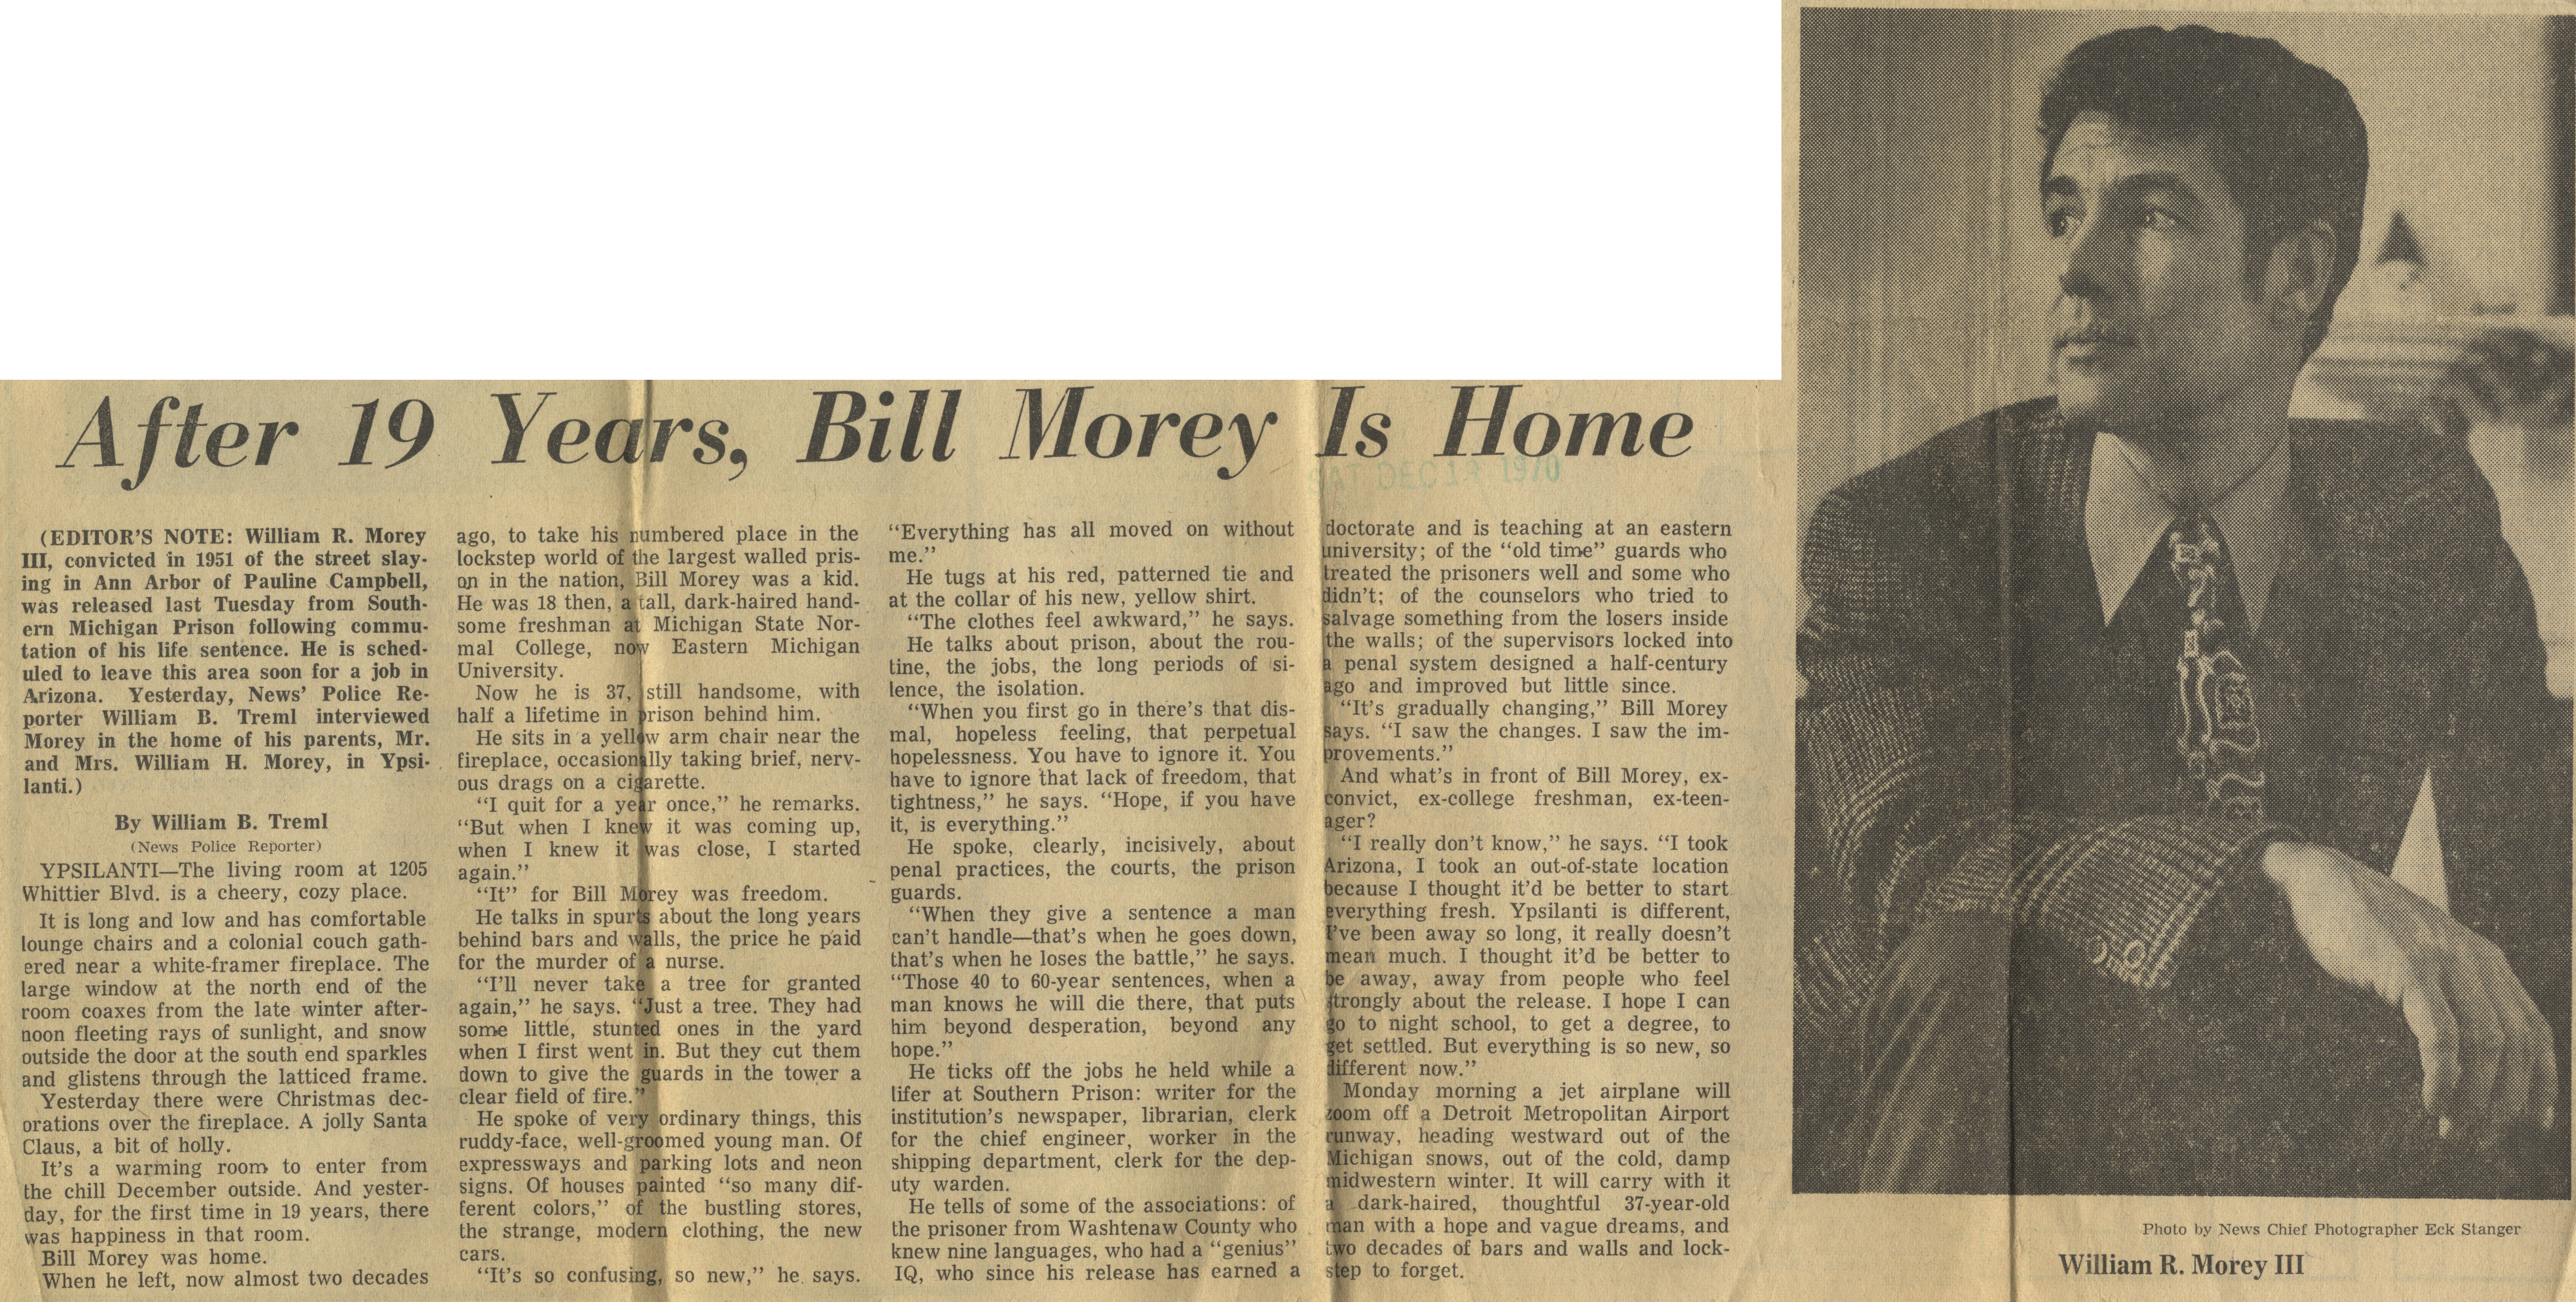 After 19 Years, Bill Morey Is Home image